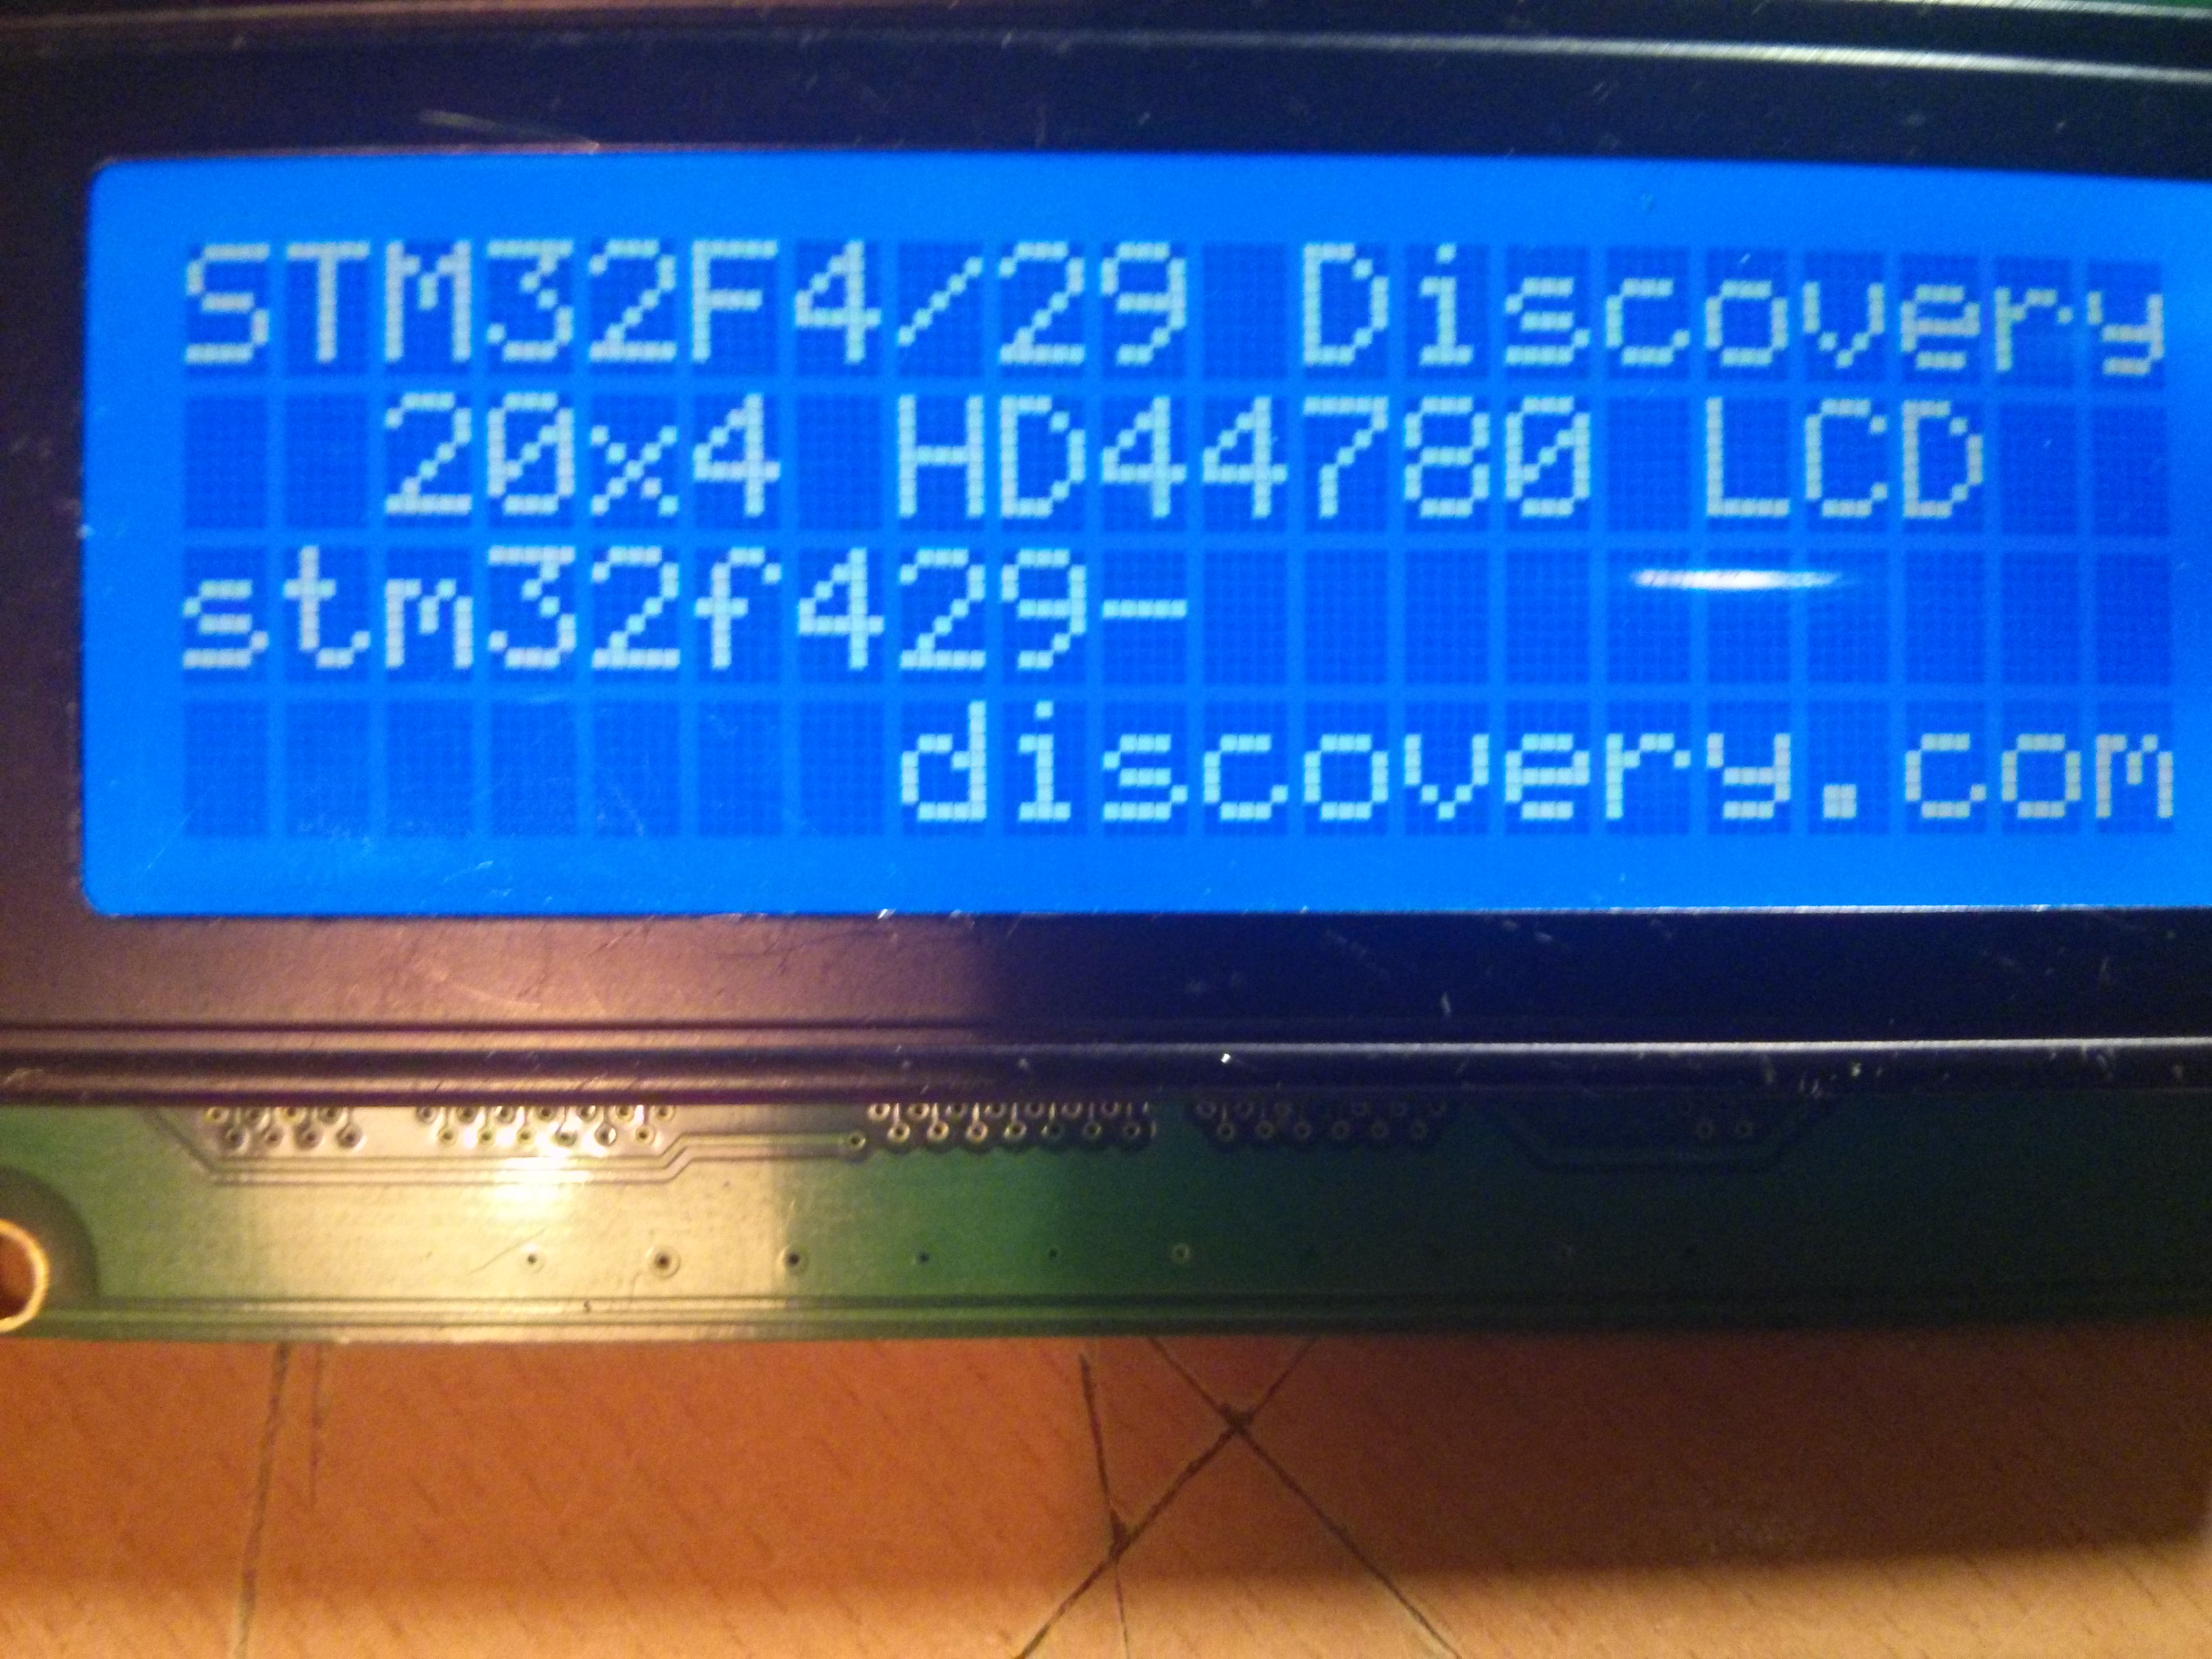 stm32f0 Archives - Page 2 of 4 - STM32F4 Discovery